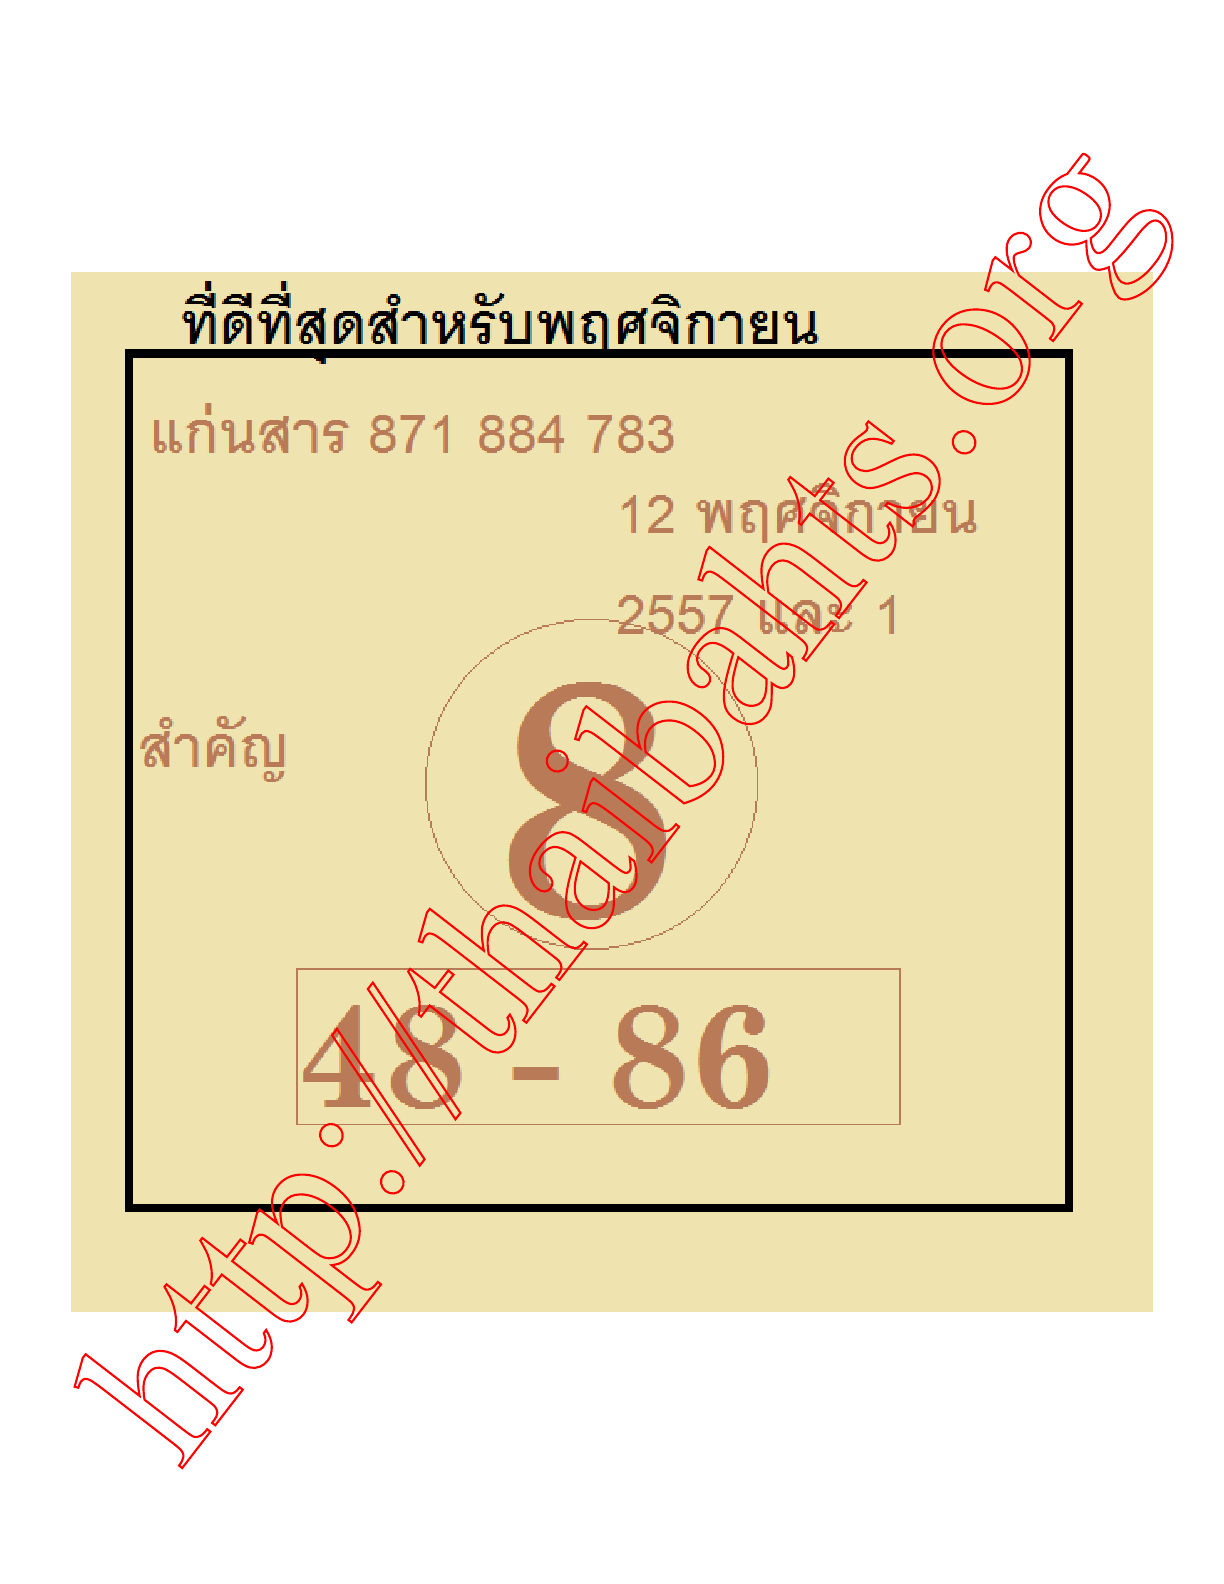 latest guess sheet for Thai lottery 16-11-2014